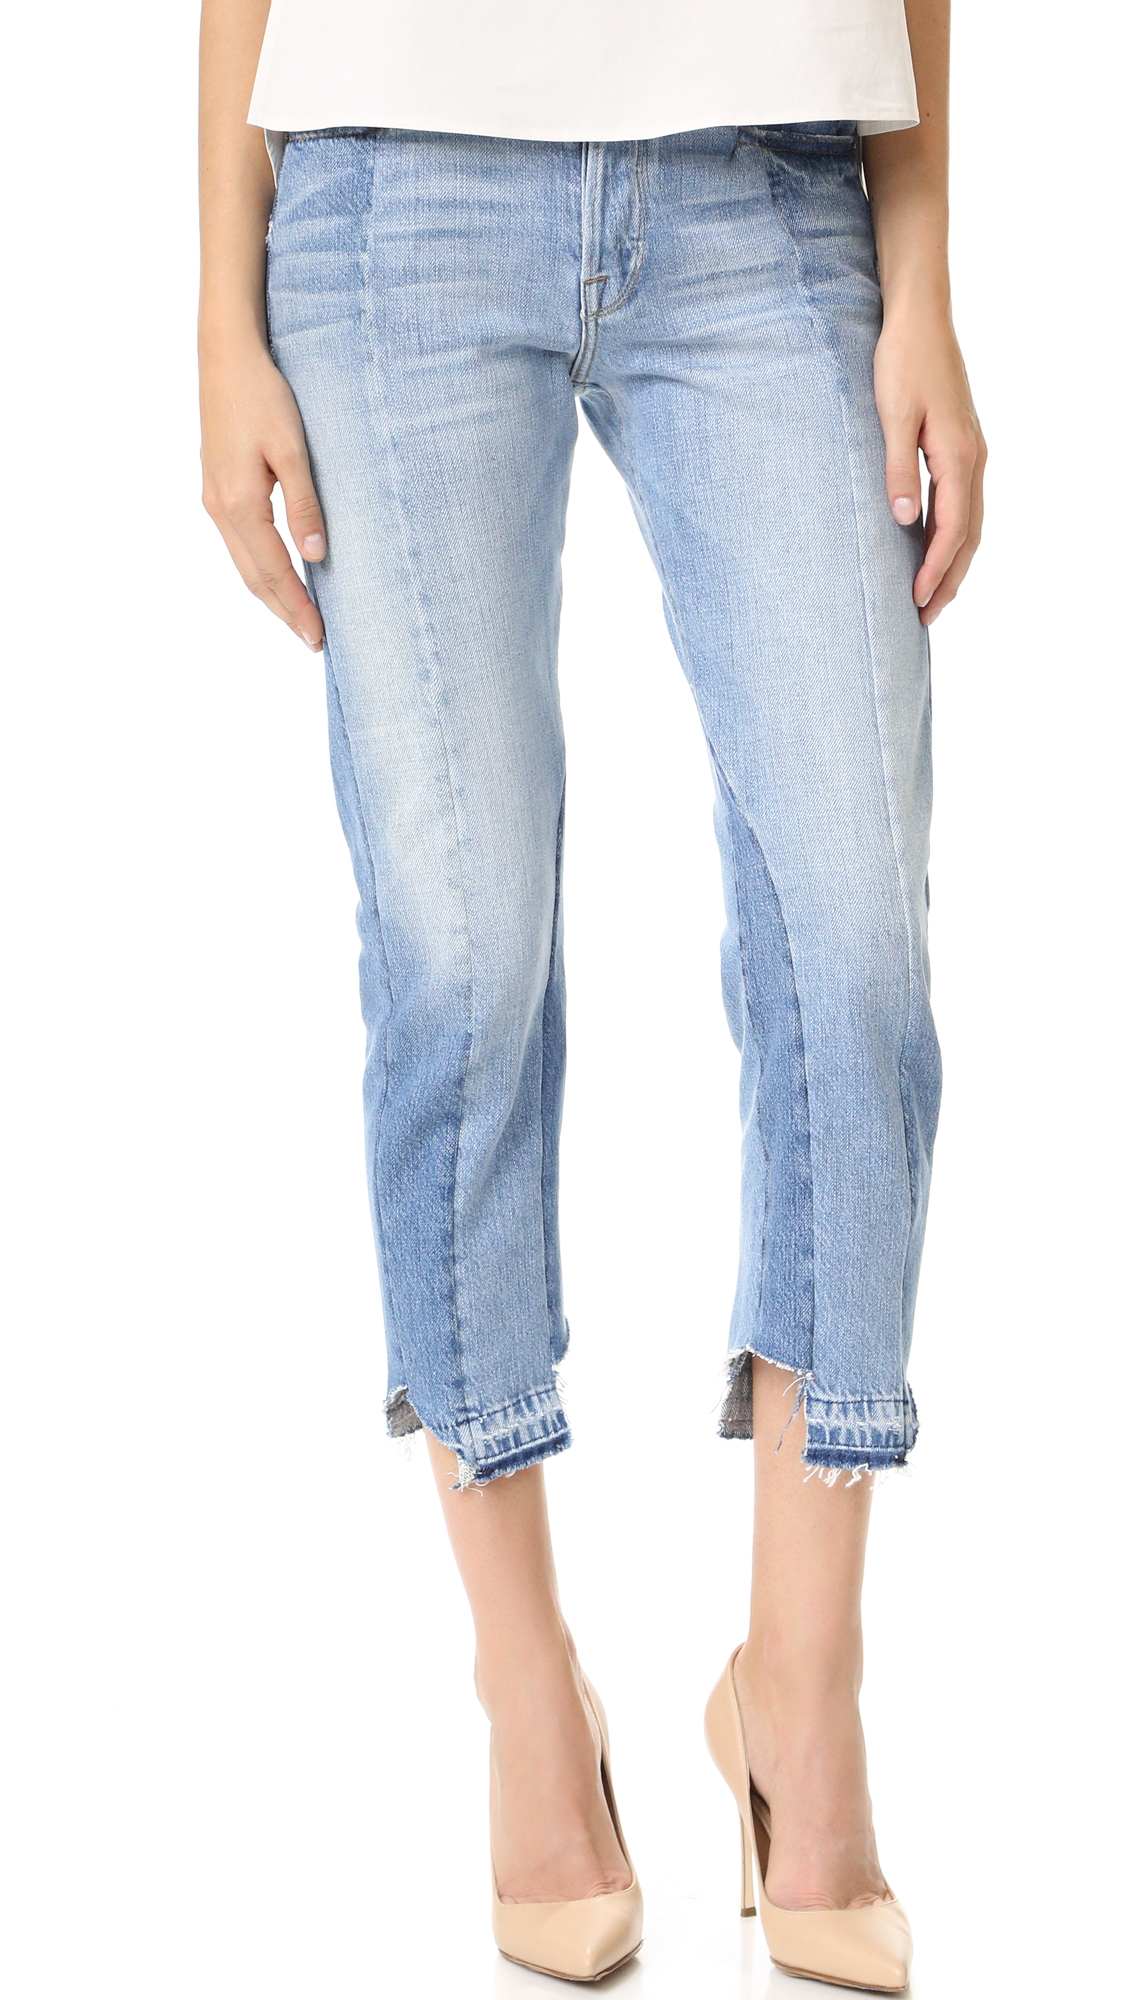 Relaxed FRAME jeans, composed of patchwork denim in a mixed wash. The raw hems are notched at the sides, and frayed spots accent the waistband. 5 pocket styling. Button fly. Fabric: Denim. 100% cotton. Wash cold. Made in